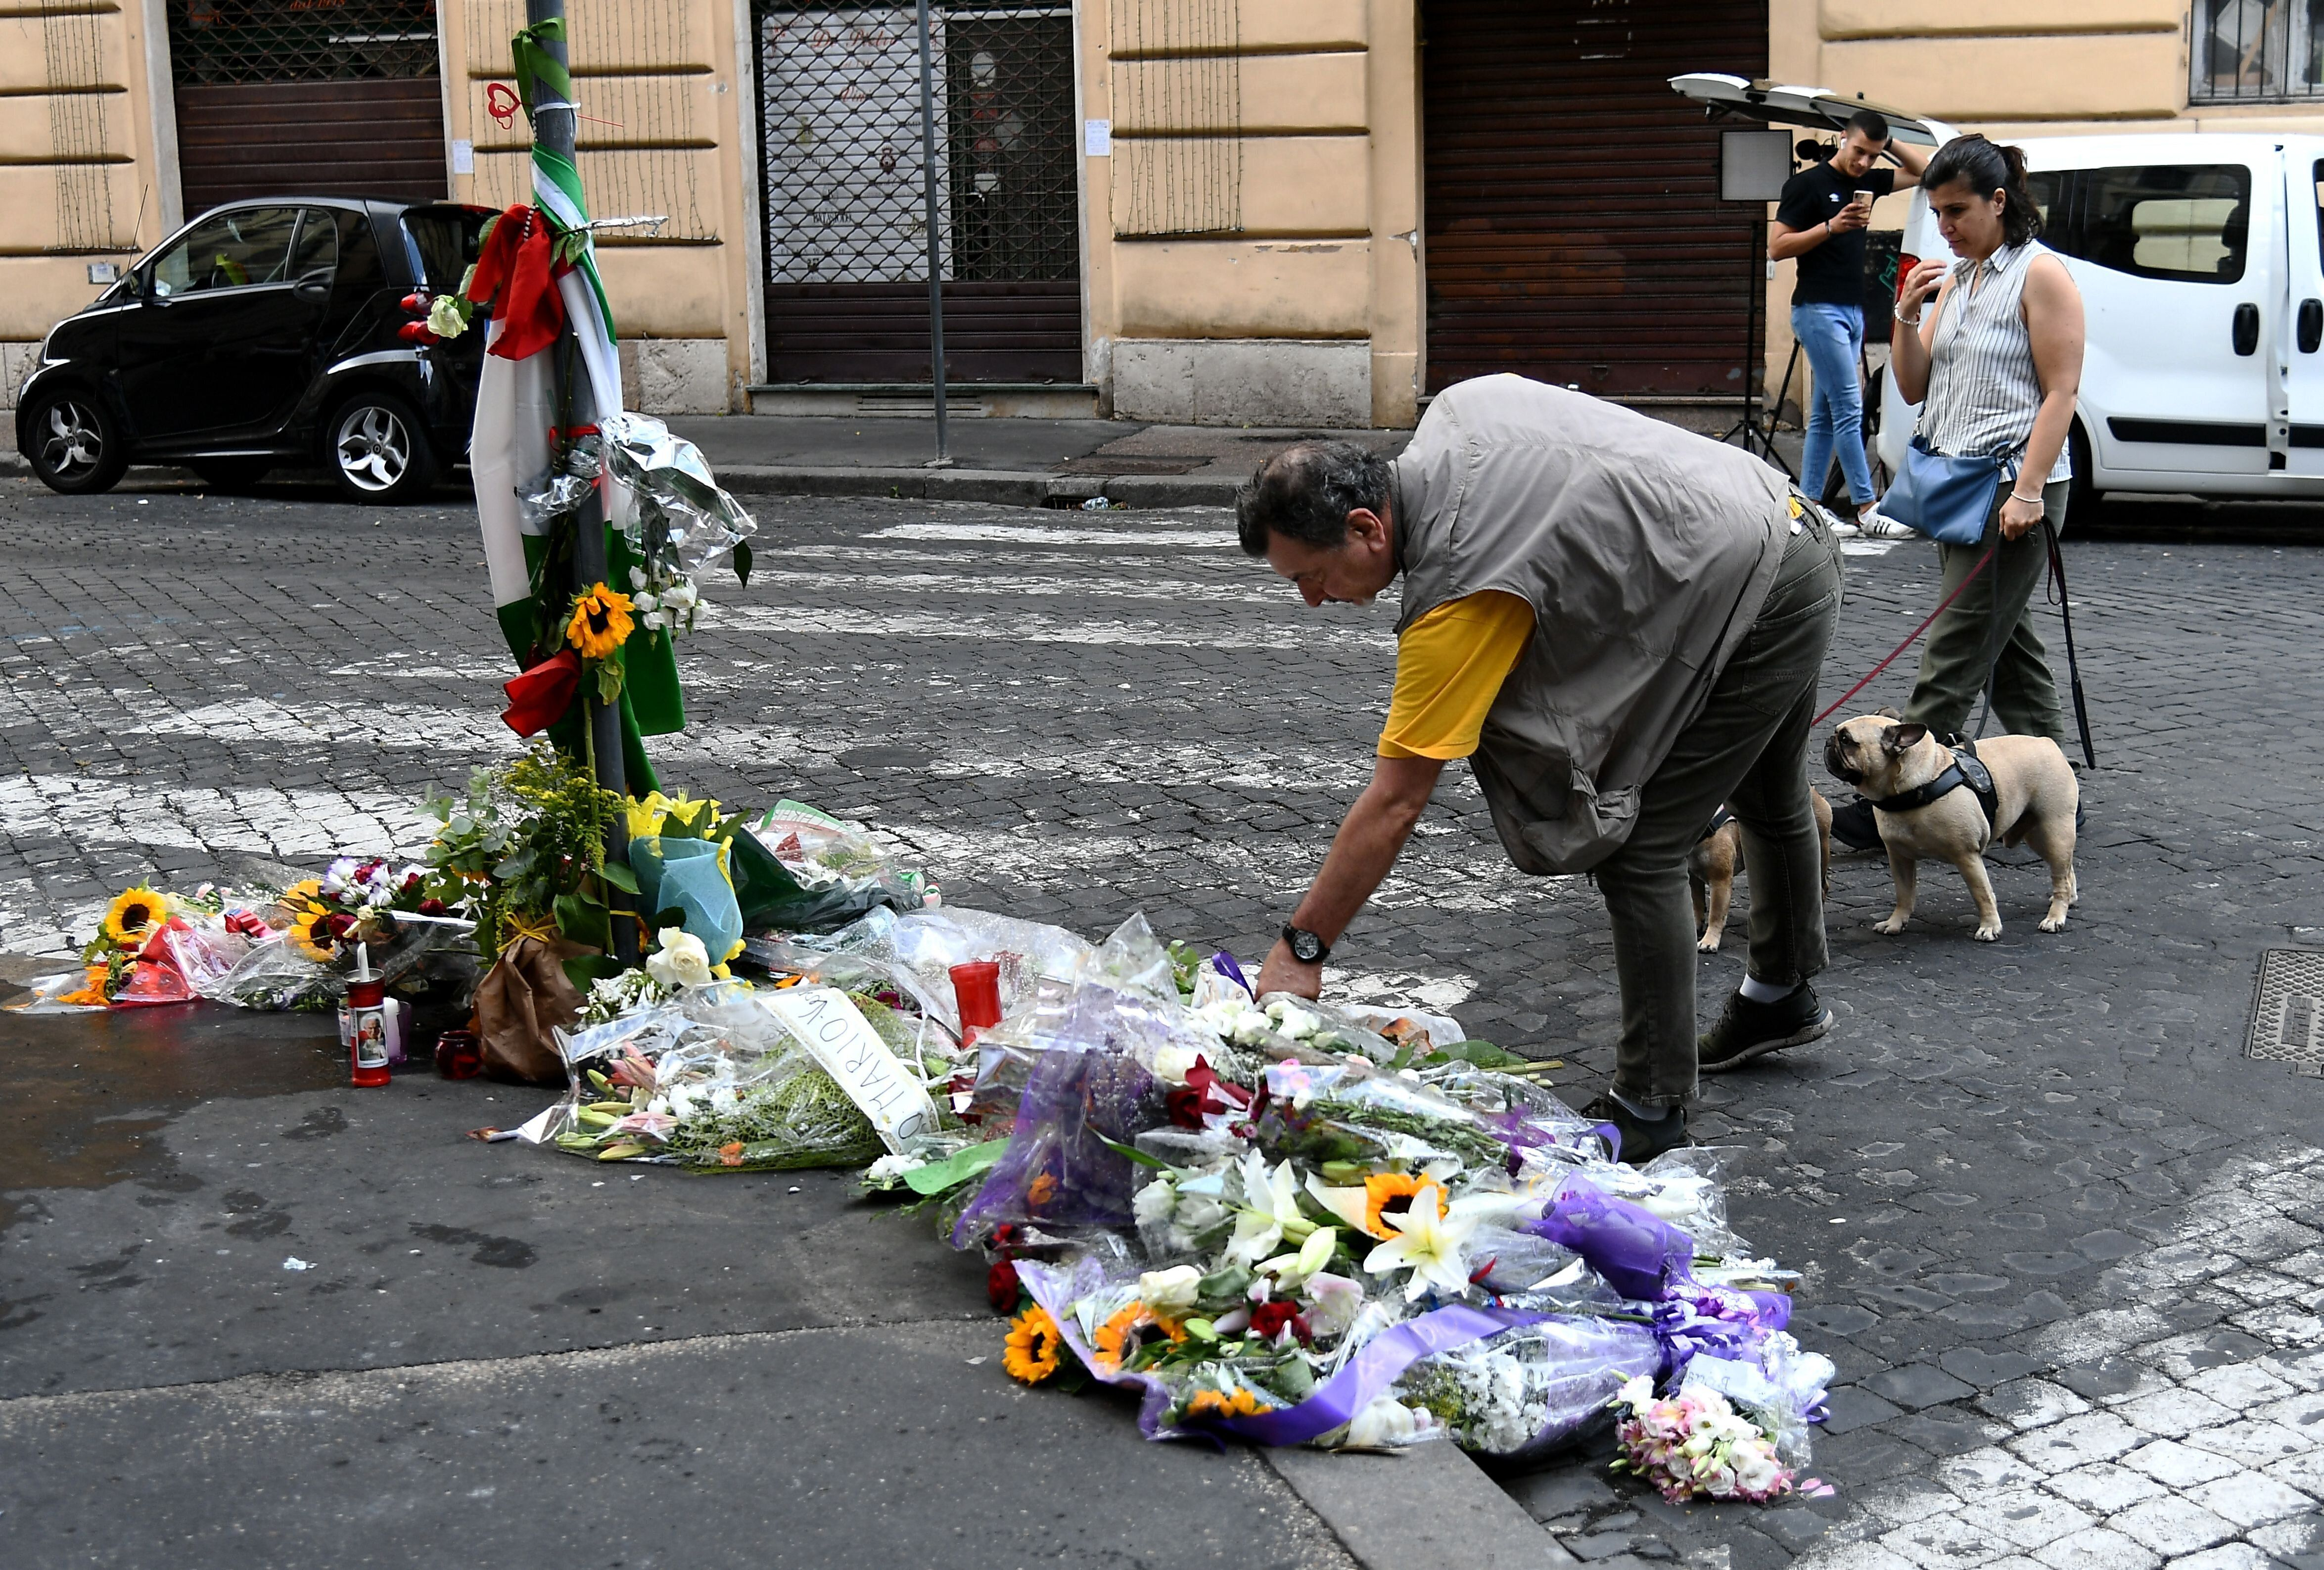 Carabiniere Mario Cerciello Rega died after being stabbed multiple times in a murder that sparked a national outcry.